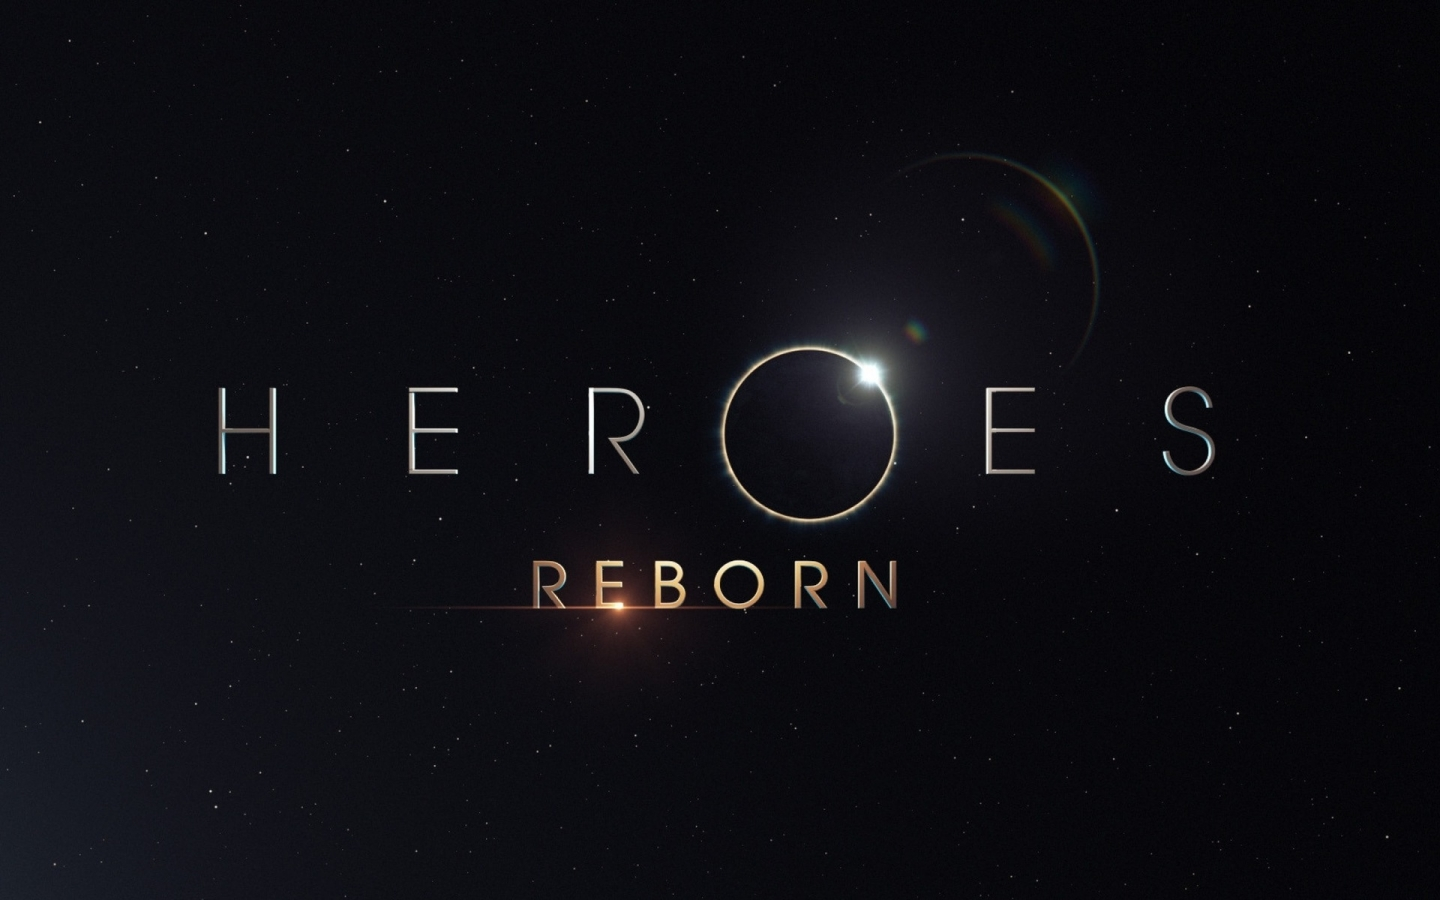 Heroes Reborn Logo for 1440 x 900 widescreen resolution